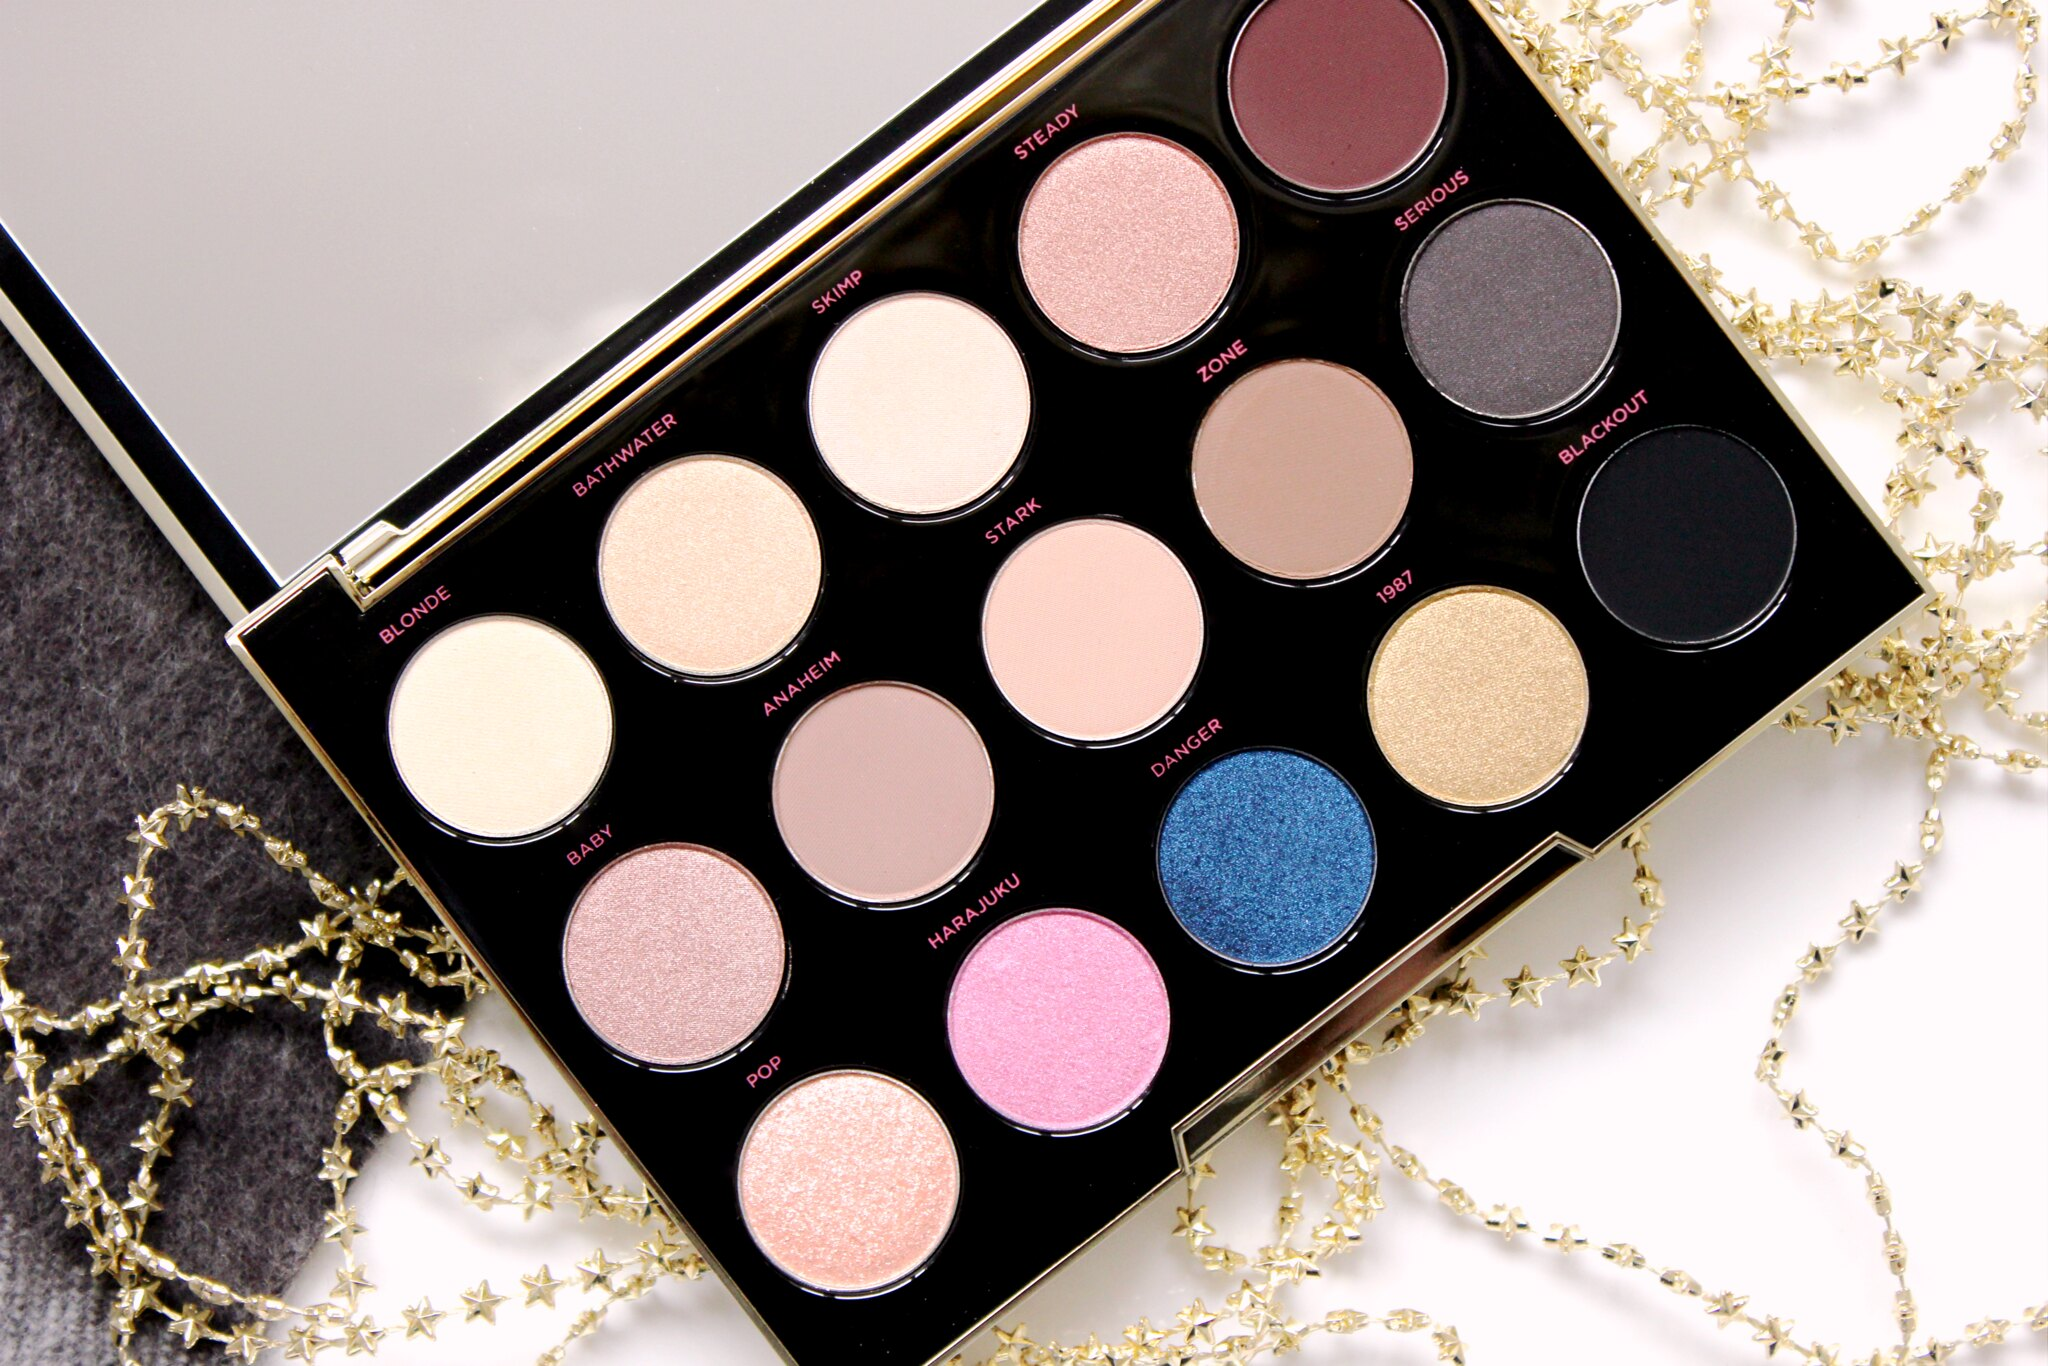 Urban Decay Gwen Stefani Eye Shadow Palette